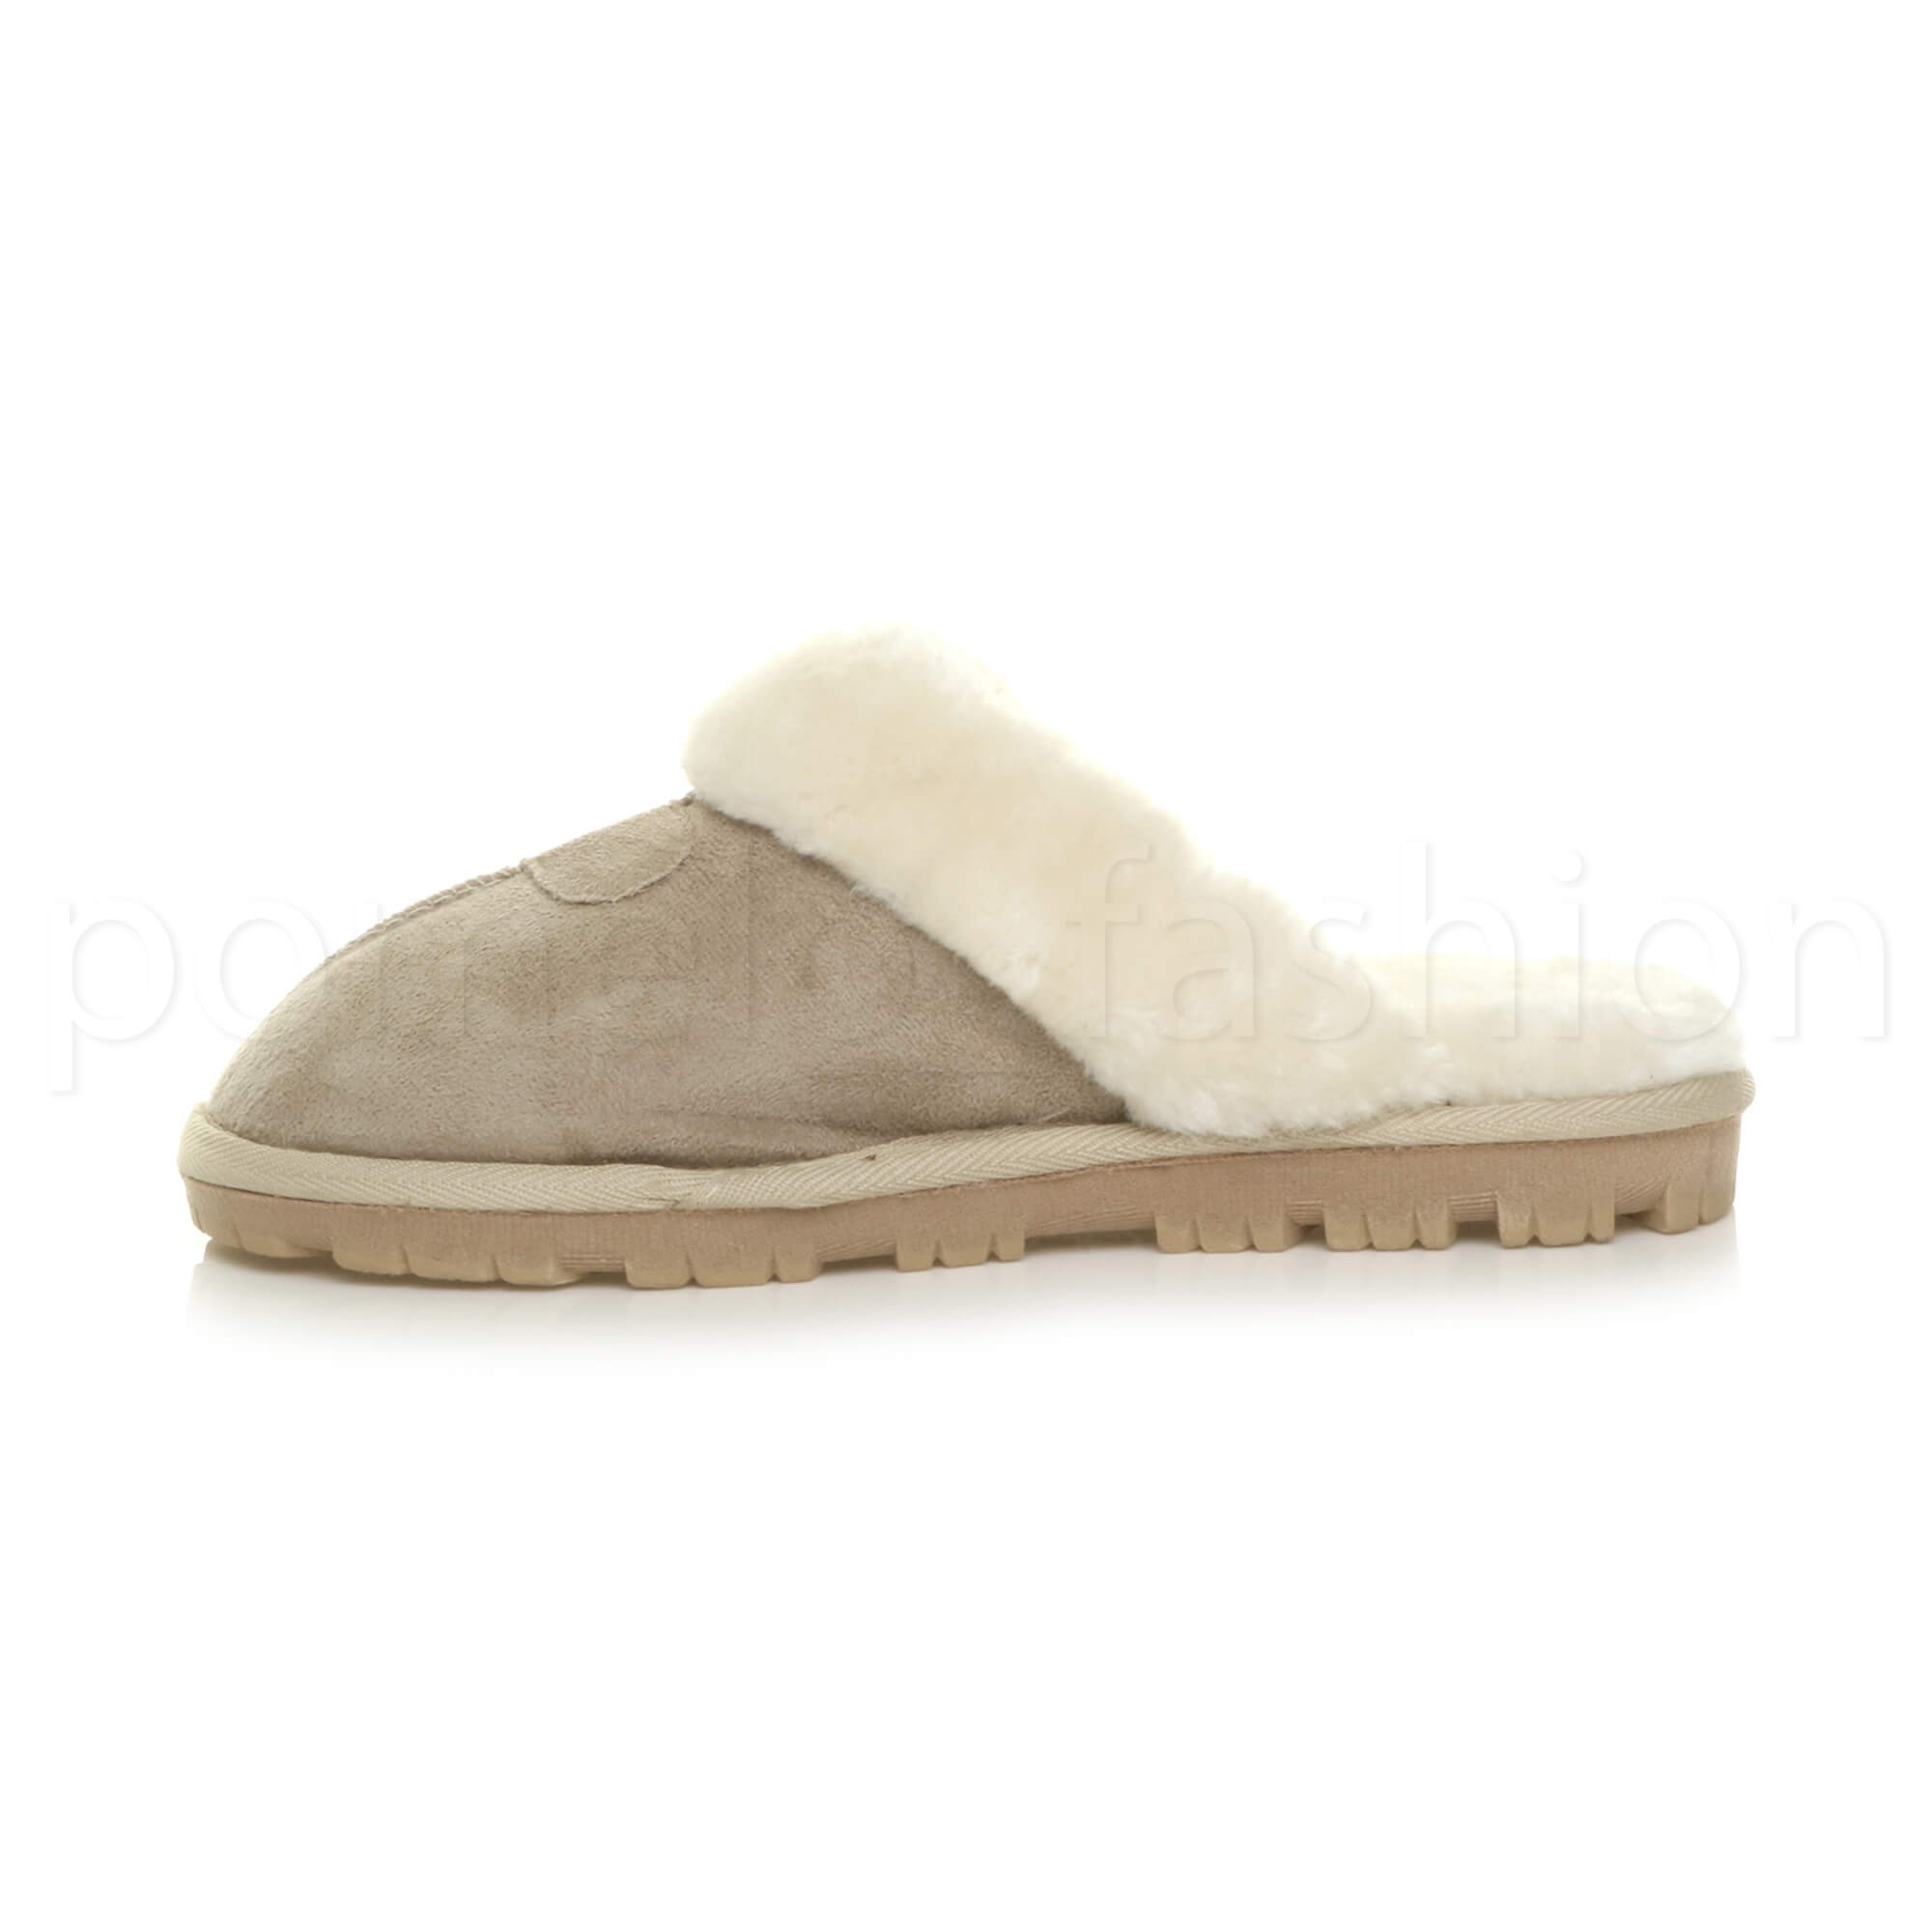 WOMENS-LADIES-FLAT-FUR-LINED-COMFORTABLE-WINTER-MULES-SLIPPERS-HOUSE-SHOES-SIZE thumbnail 4